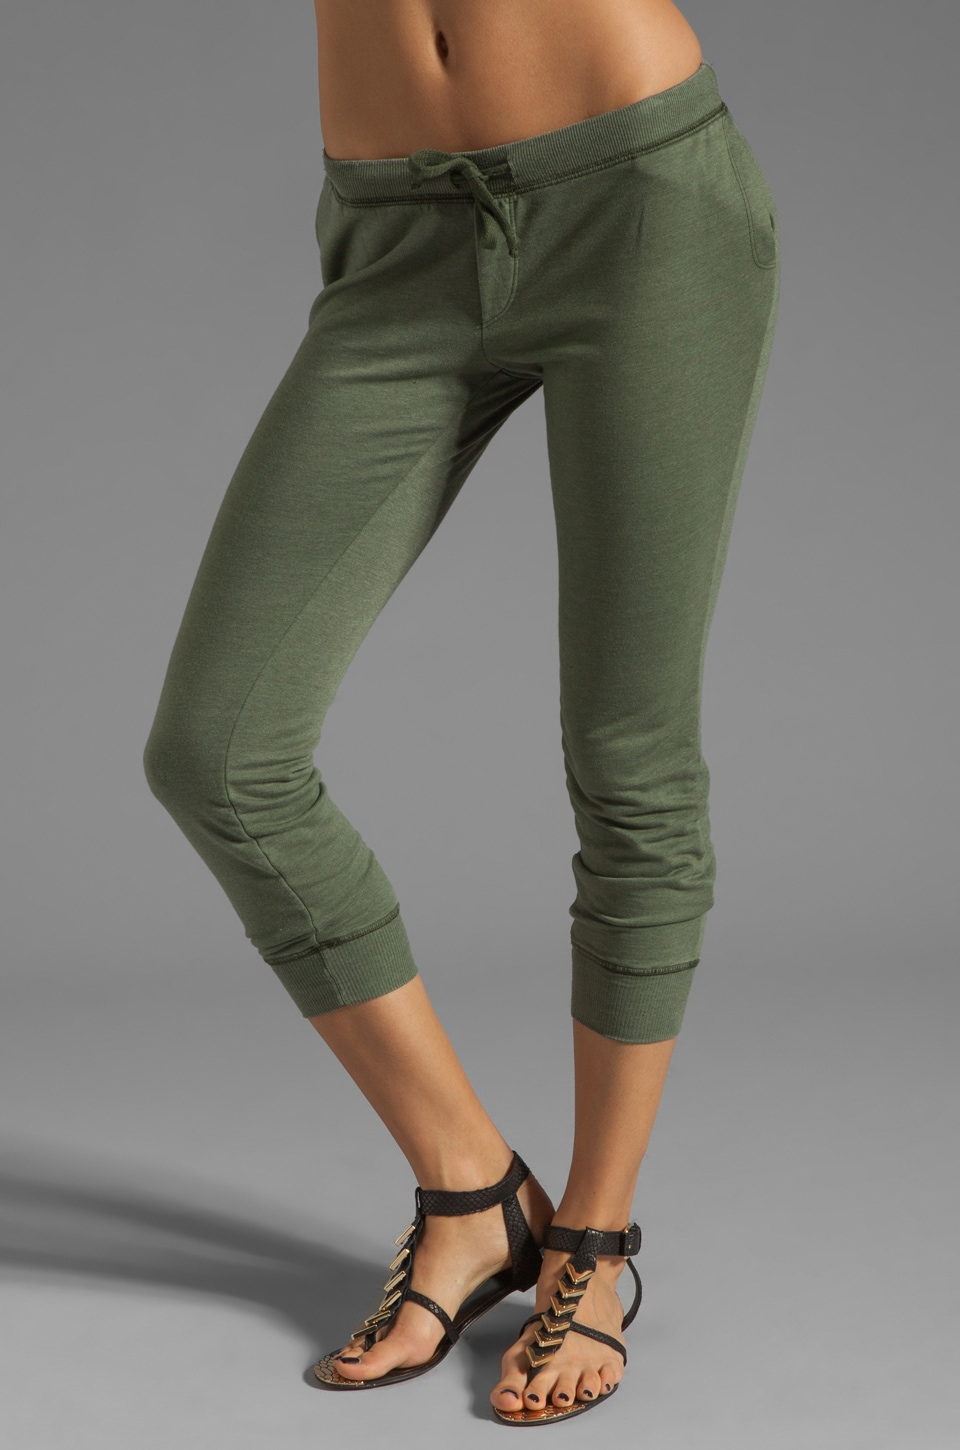 291 Freedom Wing Track Pant in Army